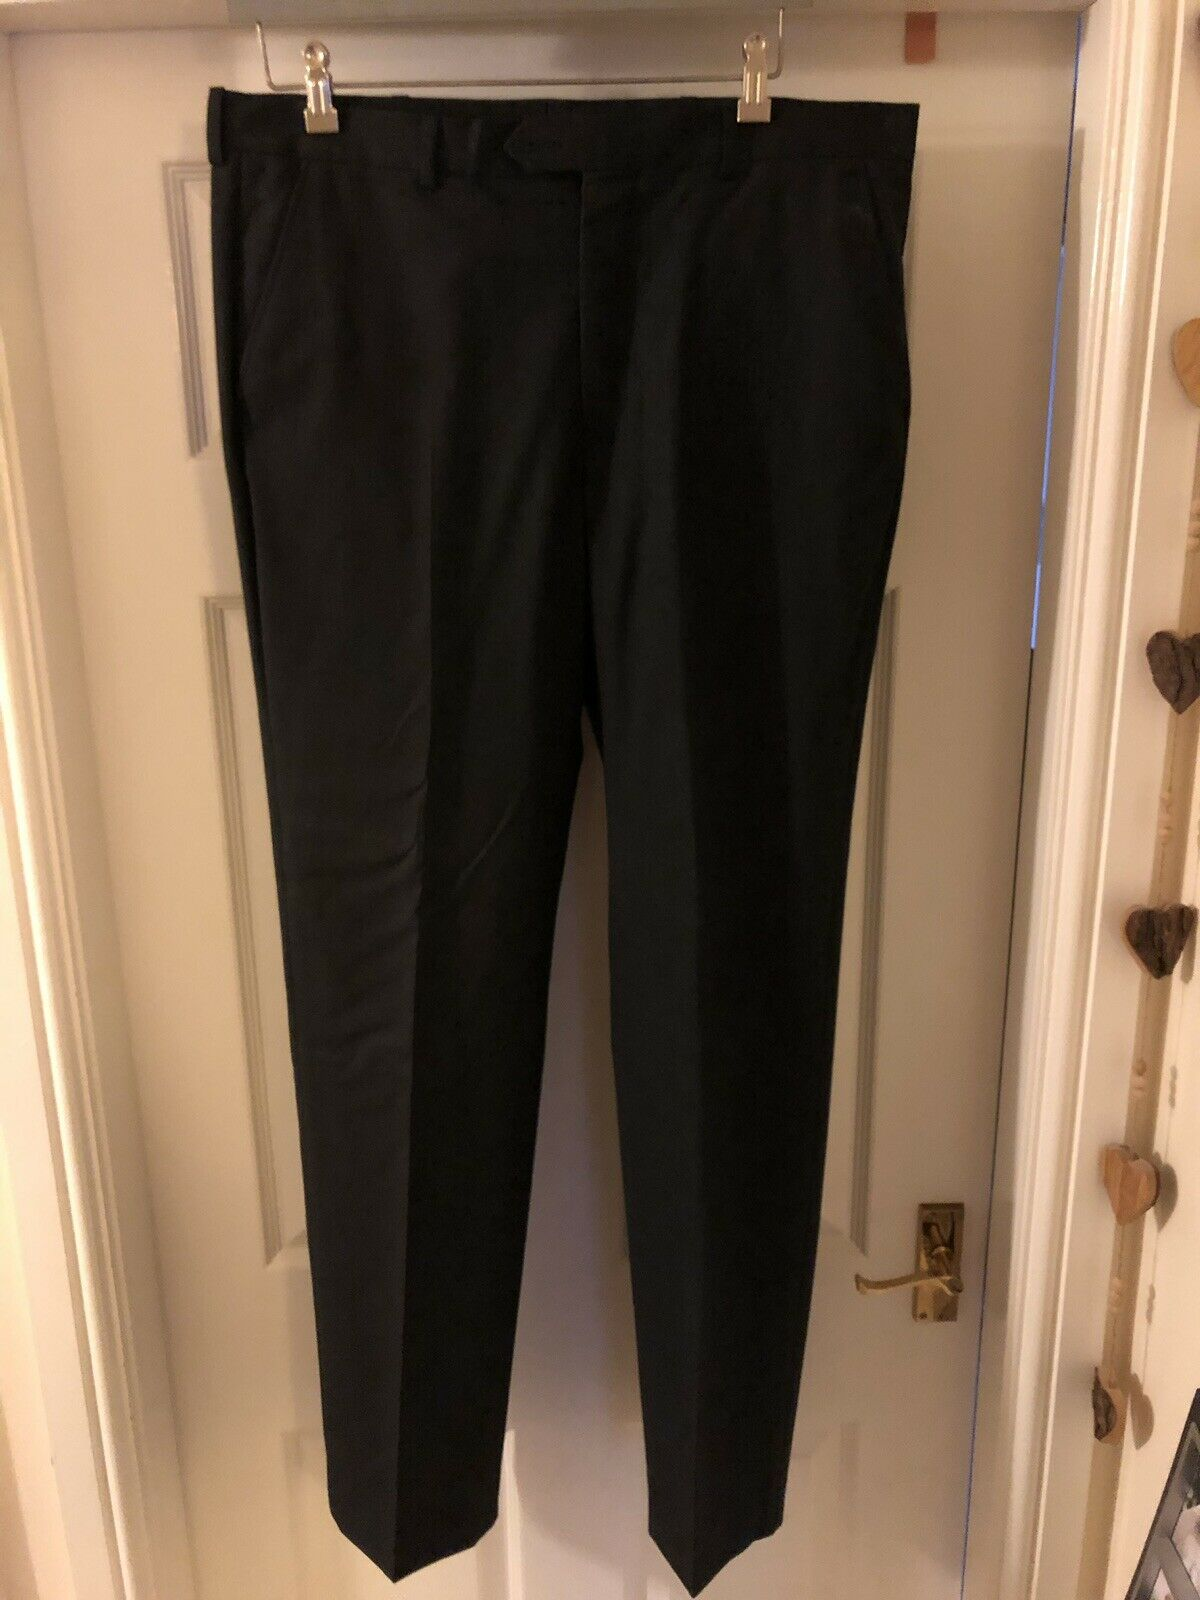 Women's Clothing Imperial Jeans Trouser Made In Italy Woman White 8p2vrjh348 Sz.s Make Offer Clothing, Shoes & Accessories